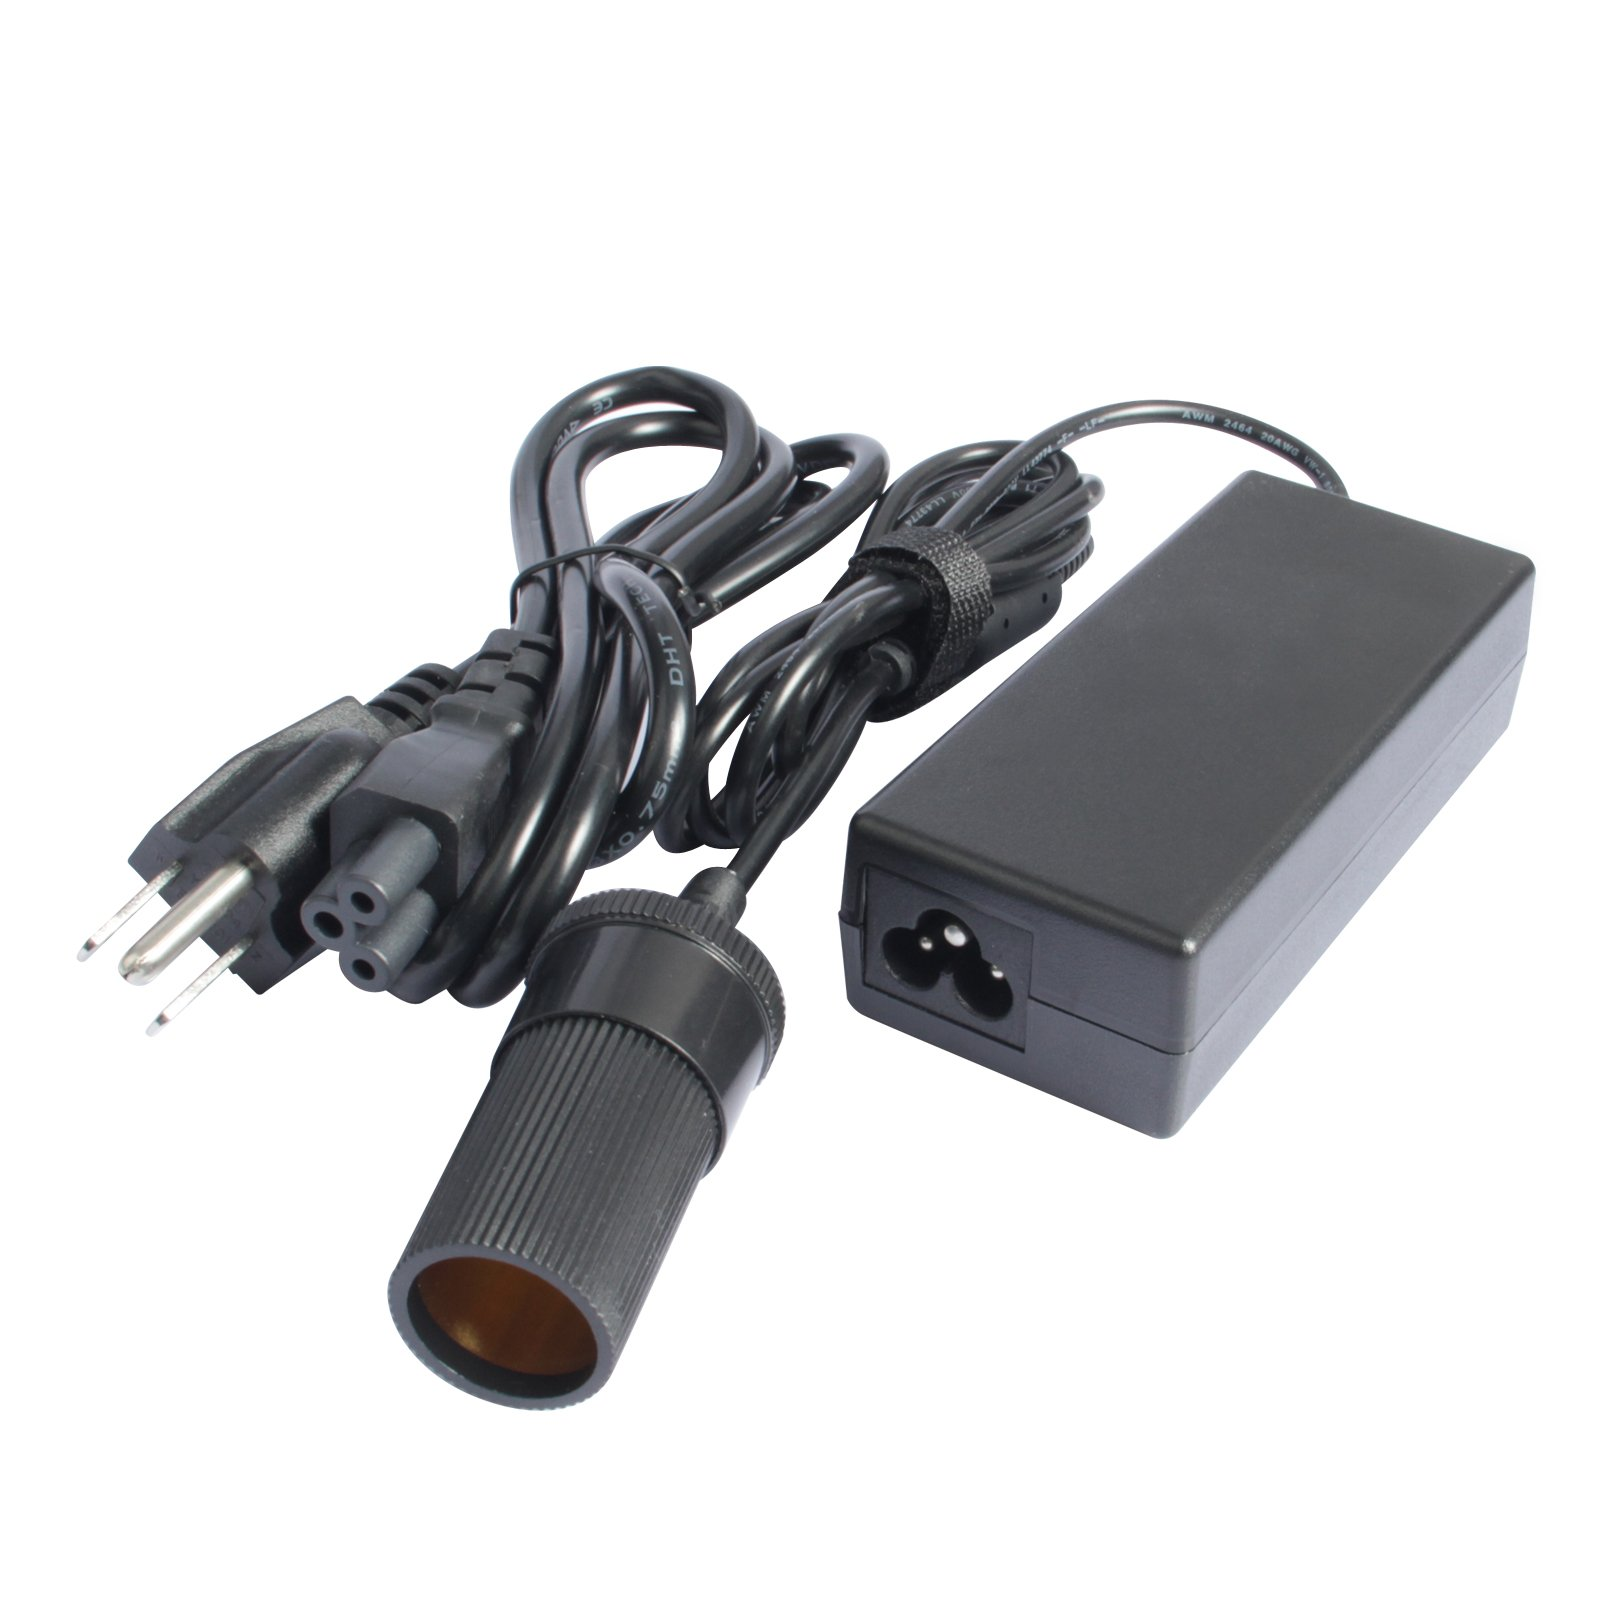 Fancy Buying 110V AC to 12V DC Converter, 12V 5A 60W Power Supply Adapter with Car Cigarette Lighter Socket (Adapter)